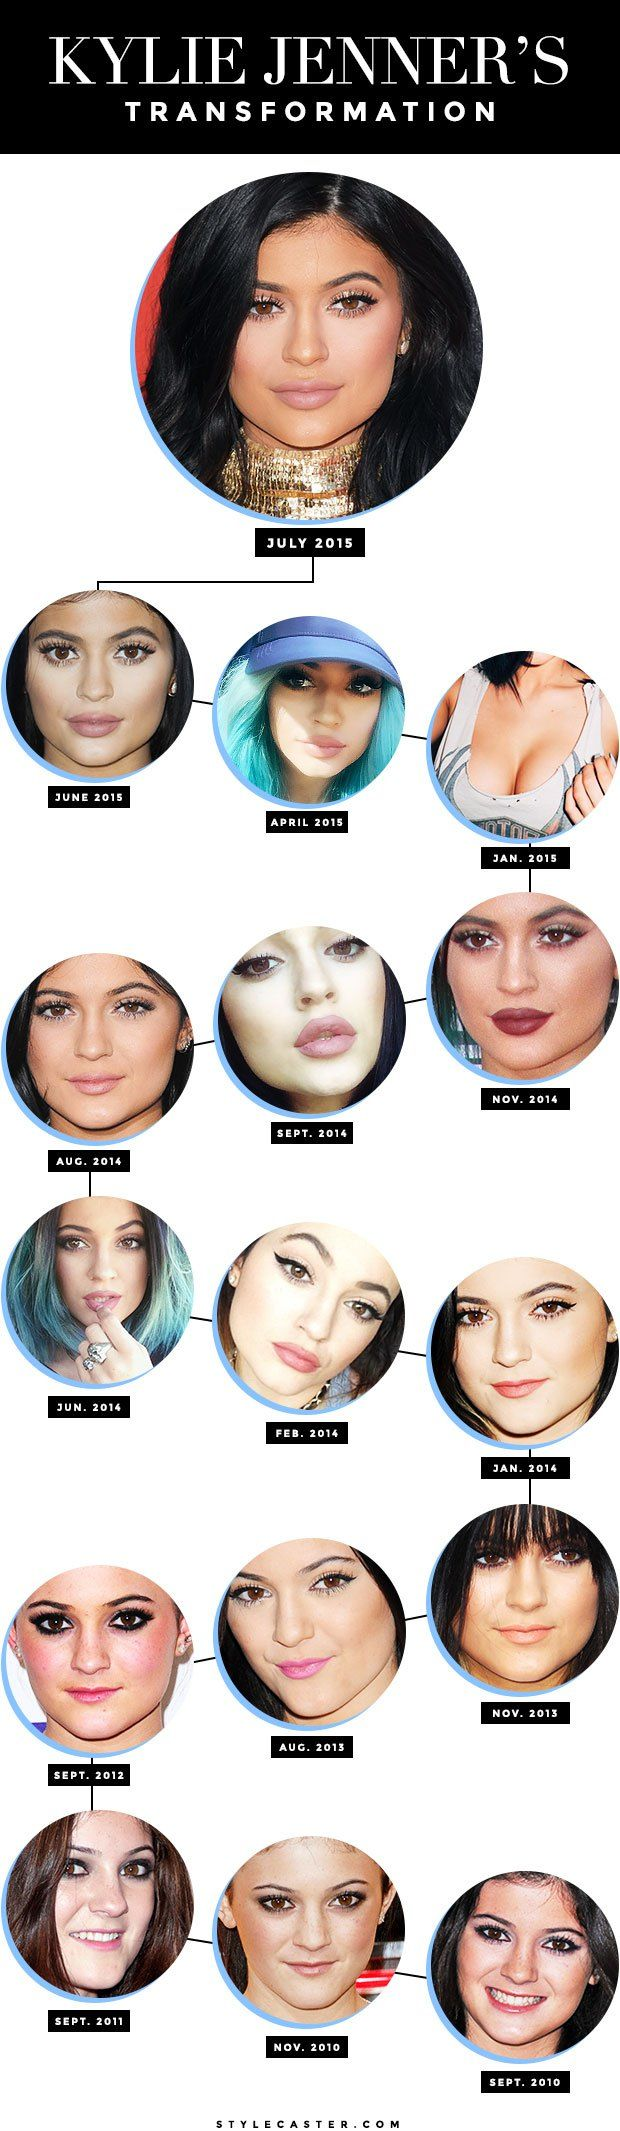 Kylie Jenner's Beauty Evolution and Changing Face | StyleCaster